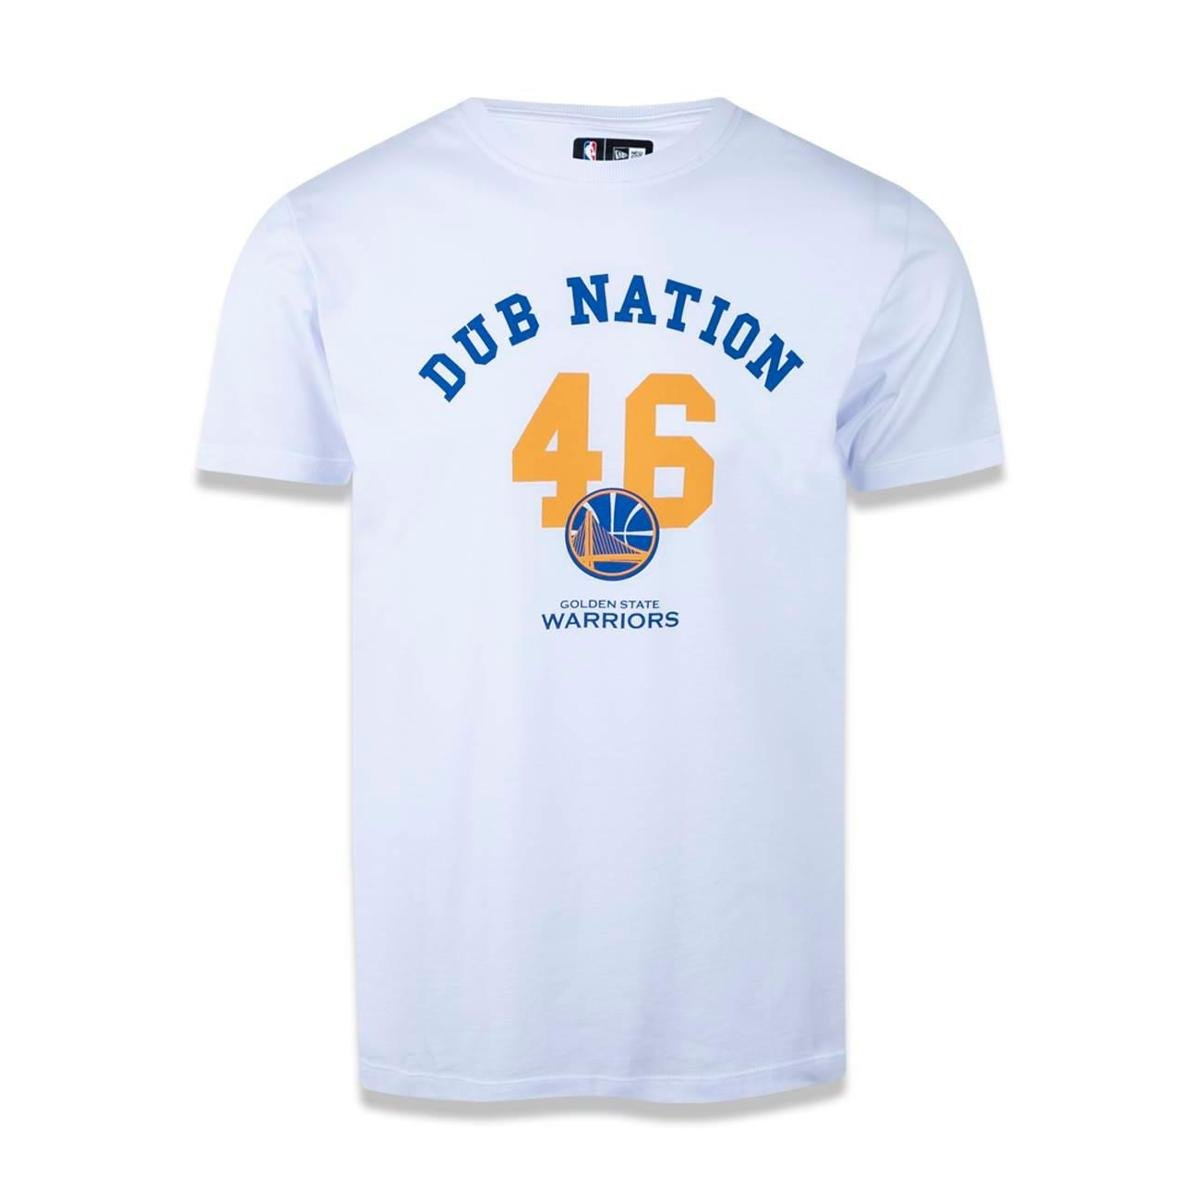 6667eb6e7 Camiseta Golden State Warriors NBA New Era Masculina - Branco - Compre  Agora